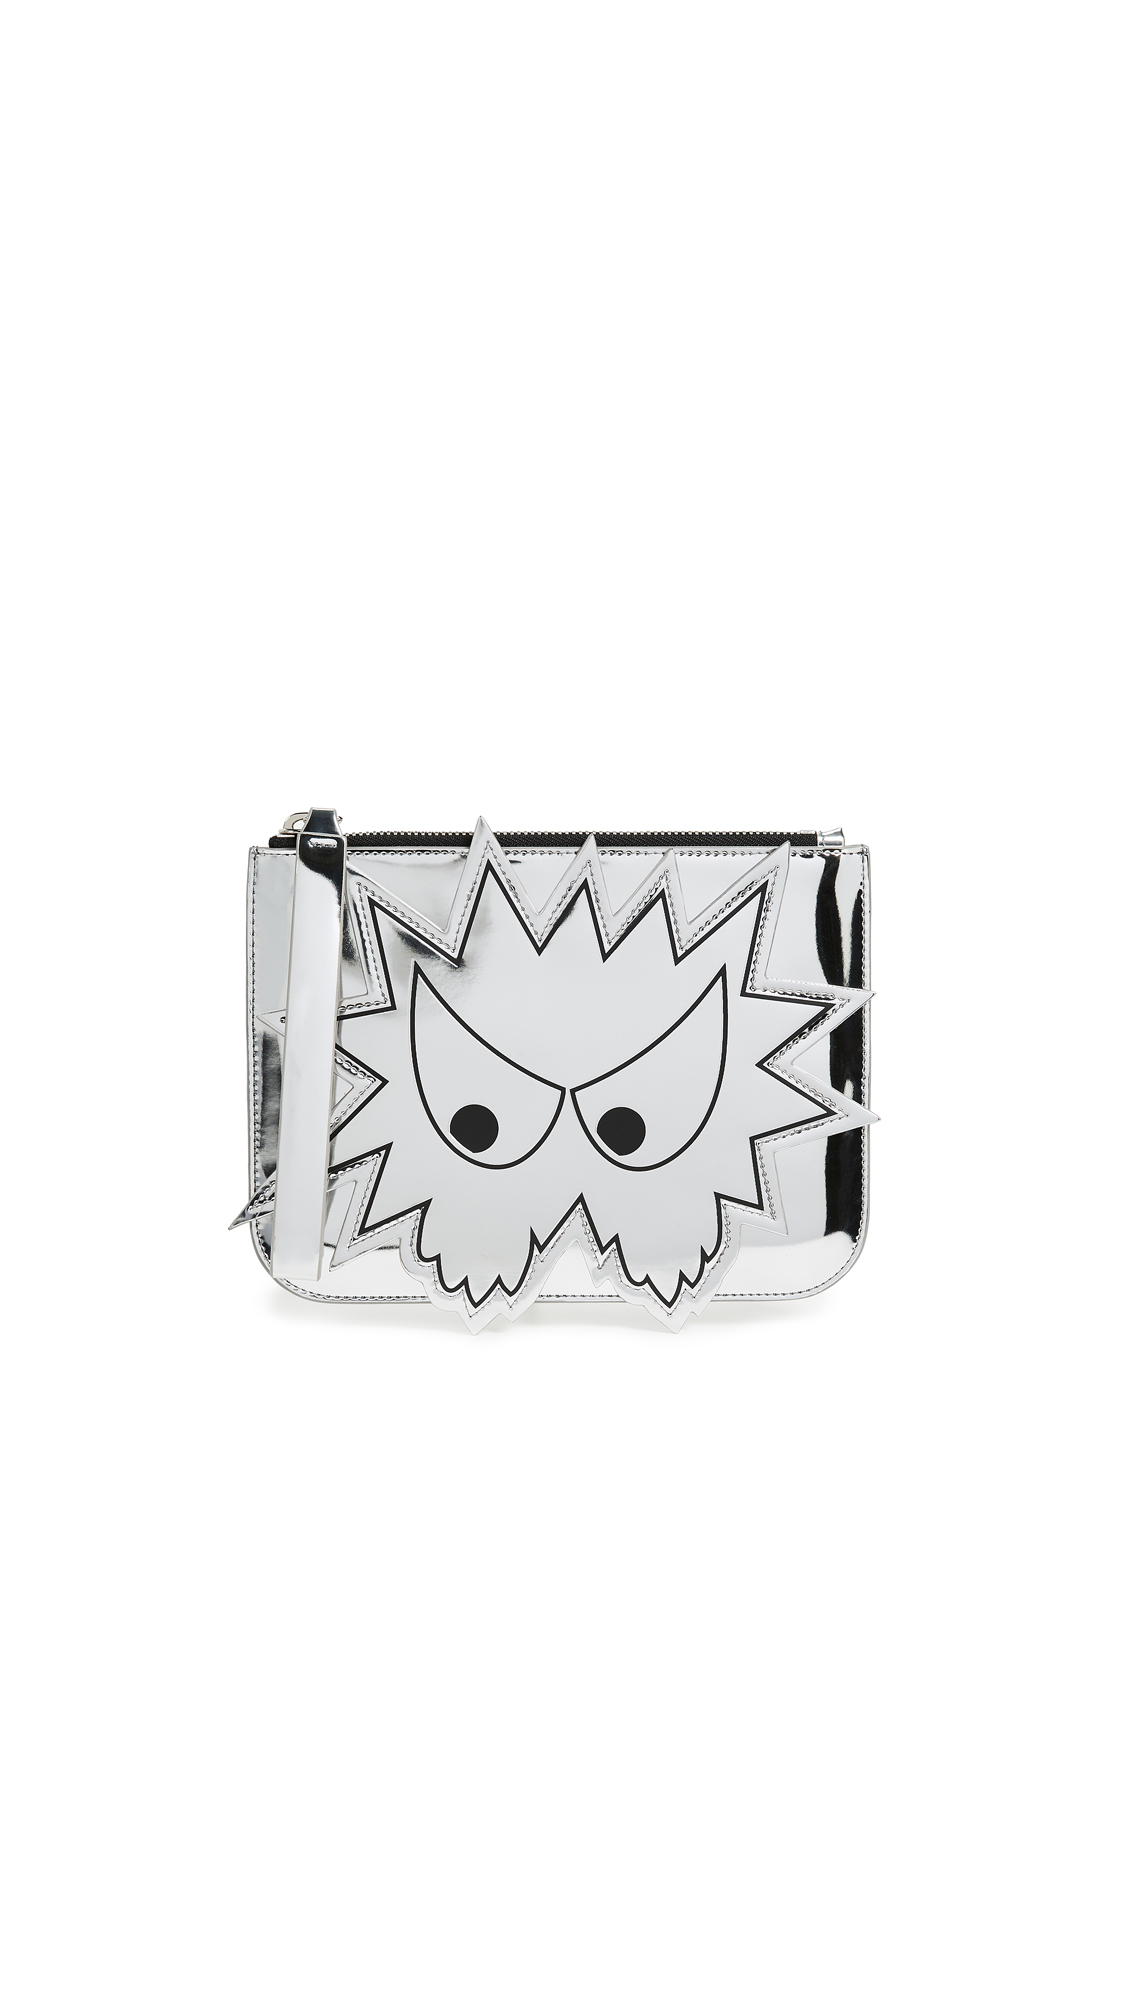 Silver Medium 'Bez' Pouch in Metallic